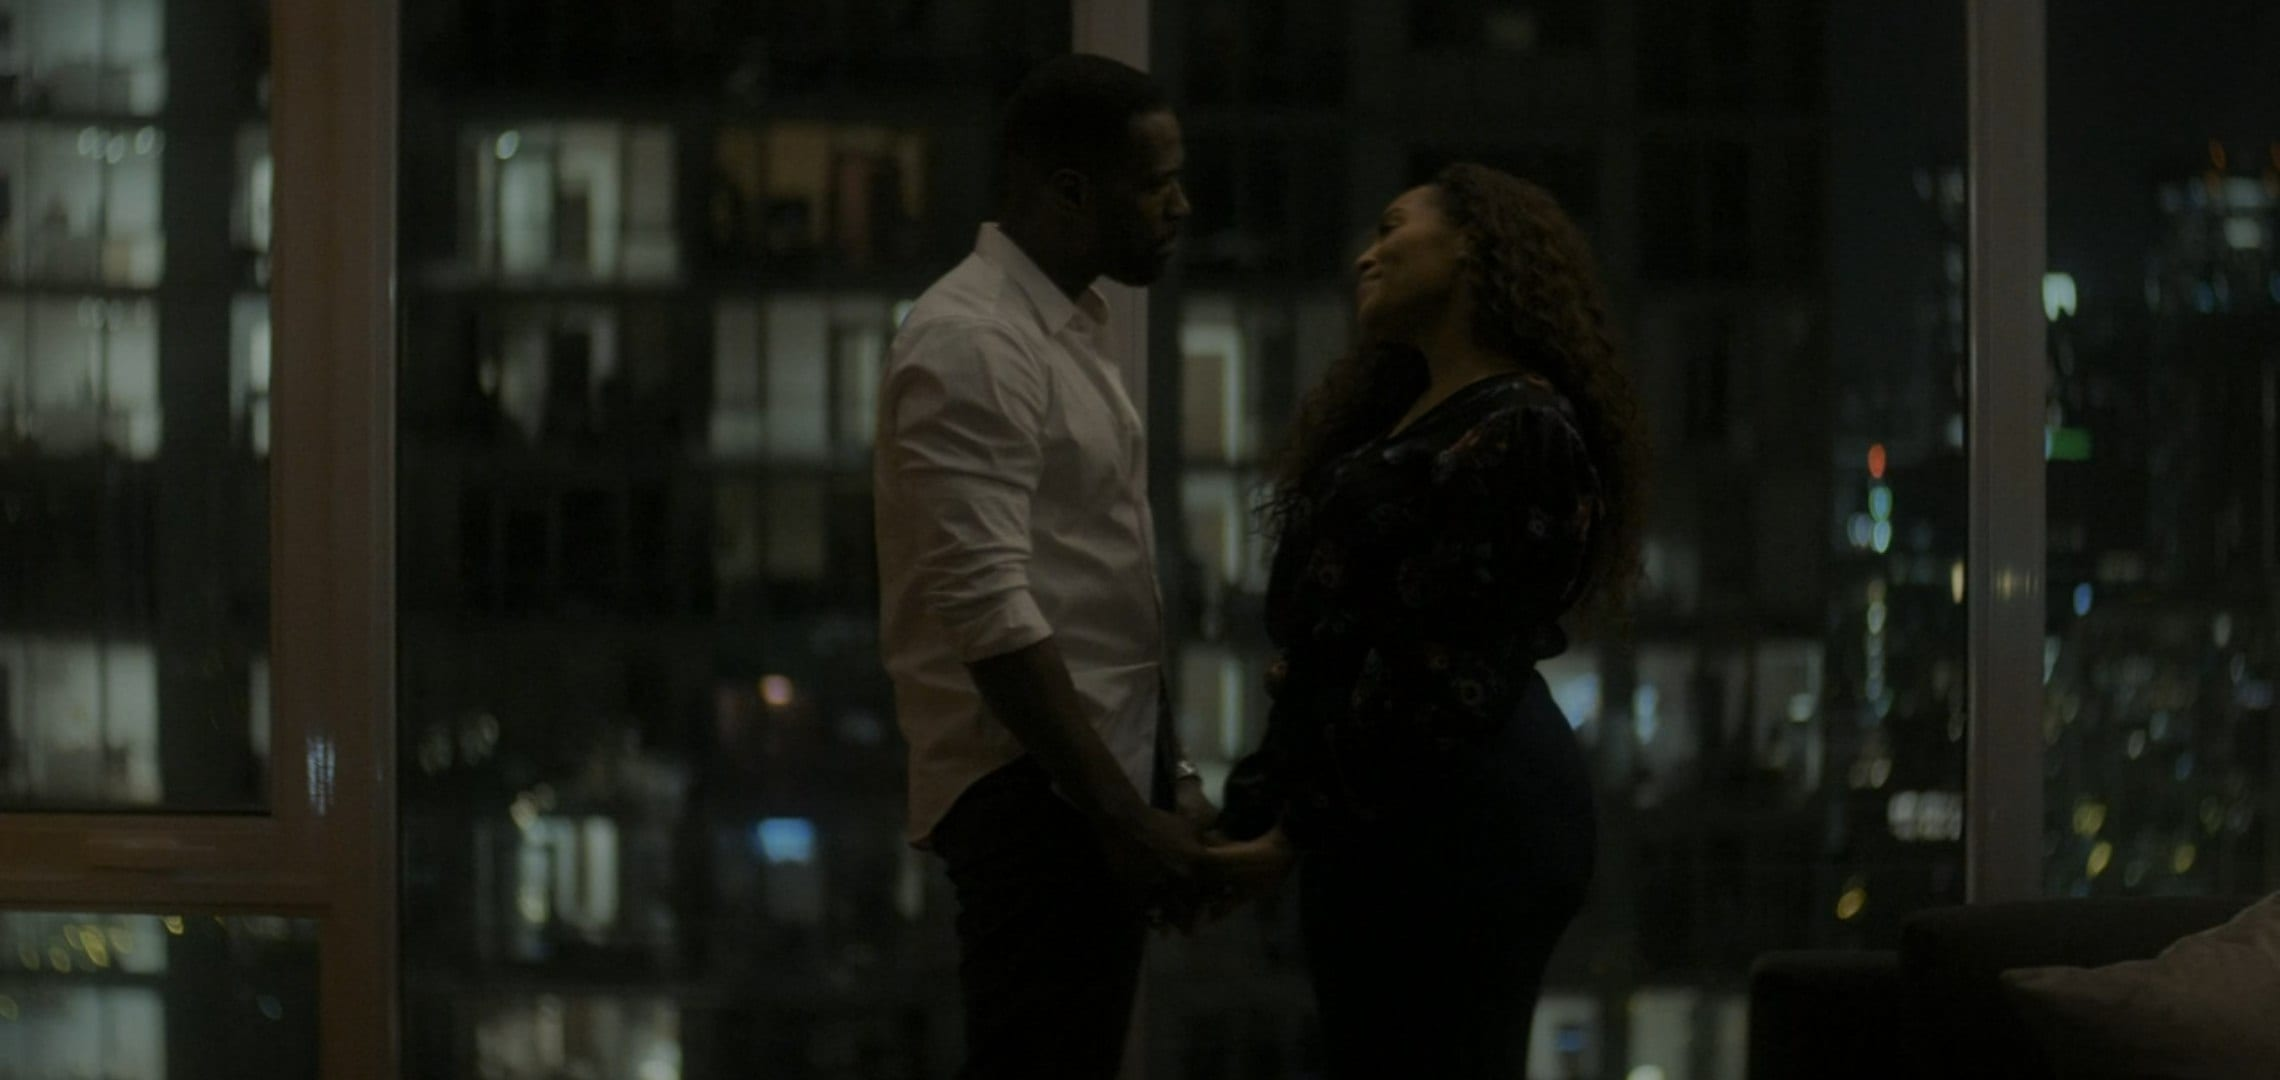 What To Expect From The Chi S04E04?